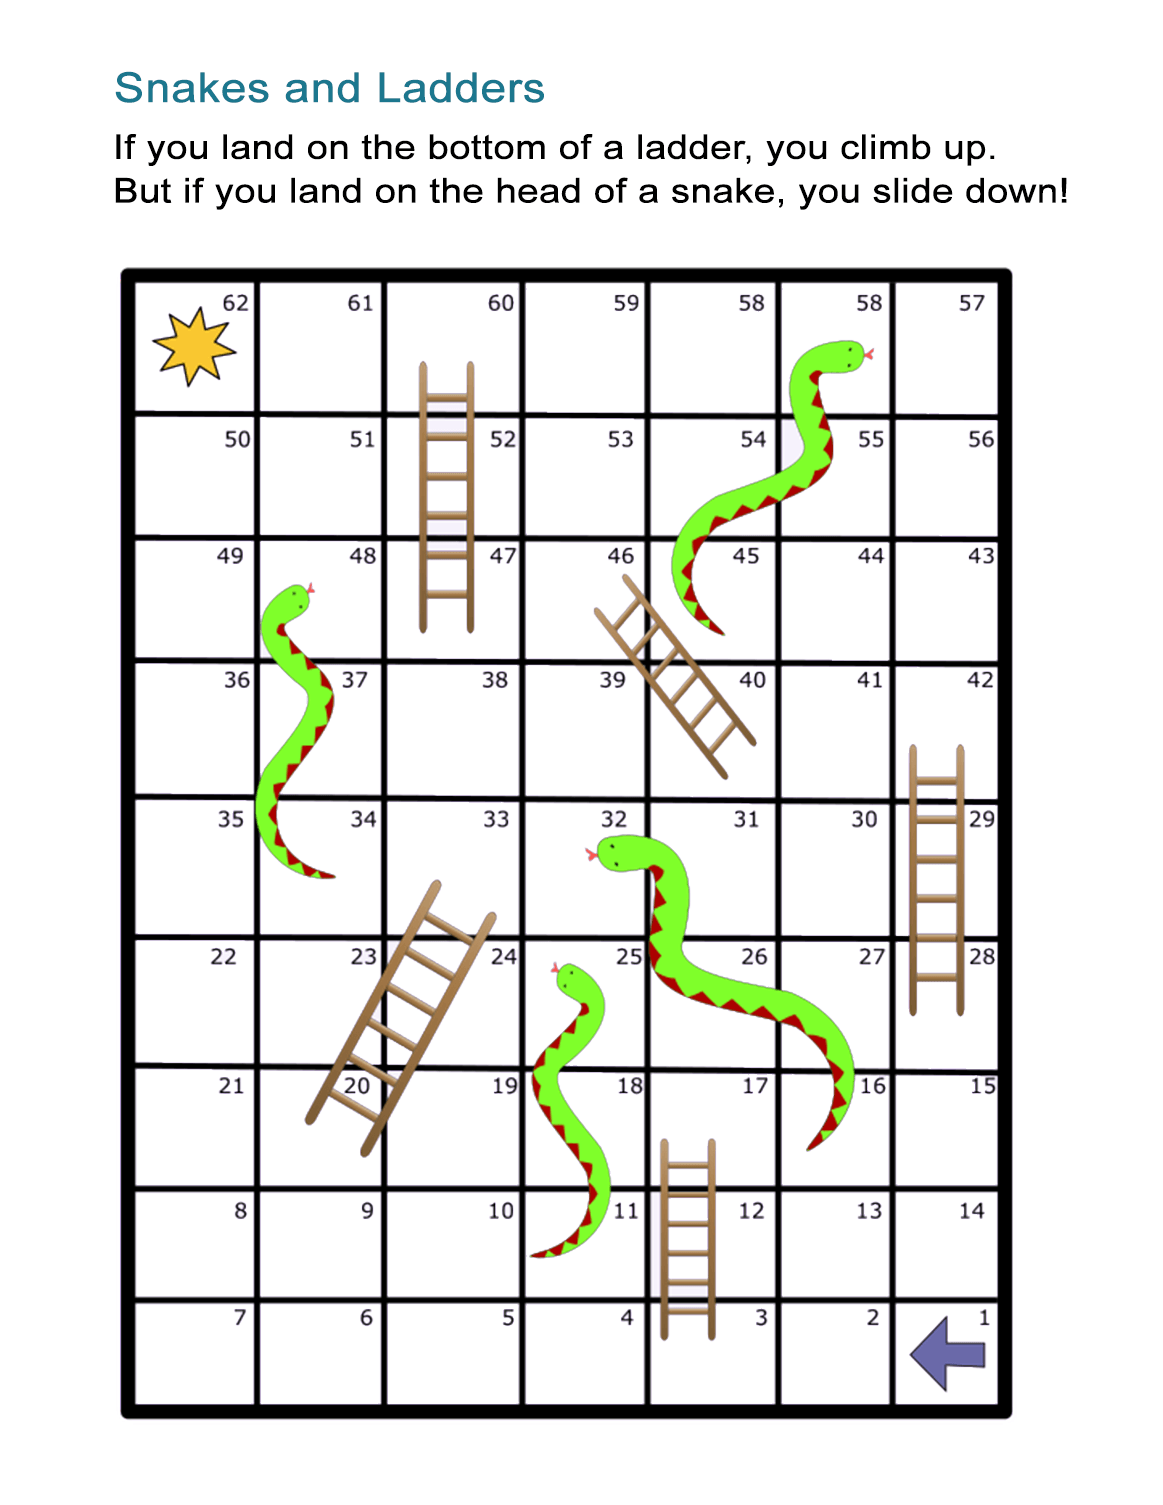 graphic regarding Snakes and Ladders Printable titled Snakes and Ladders Board Match: Absolutely free and Printable Worksheet